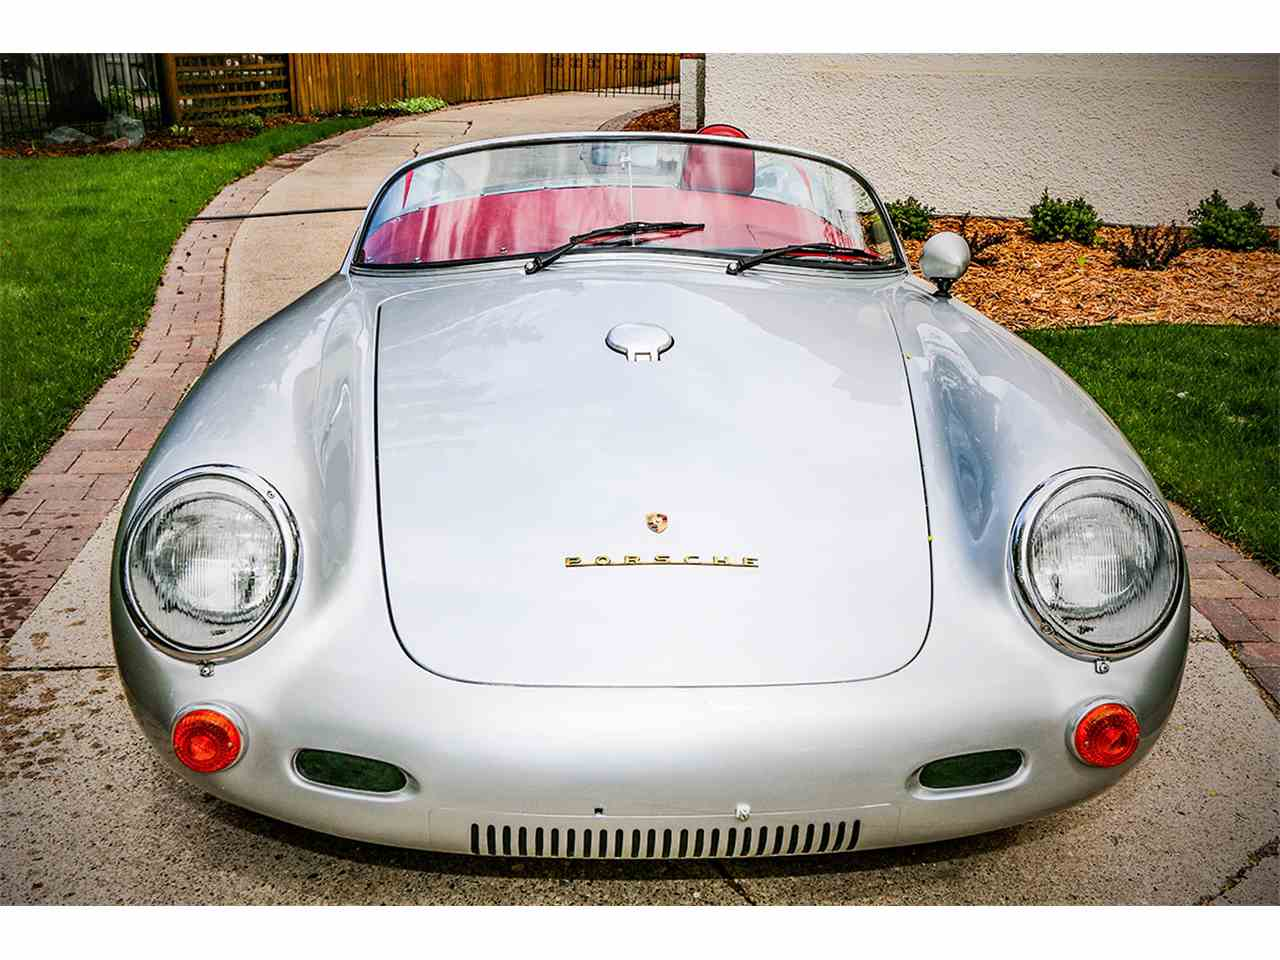 Large Picture of Classic '55 Porsche 550 located in North Dakota - $59,500.00 Offered by a Private Seller - NC22